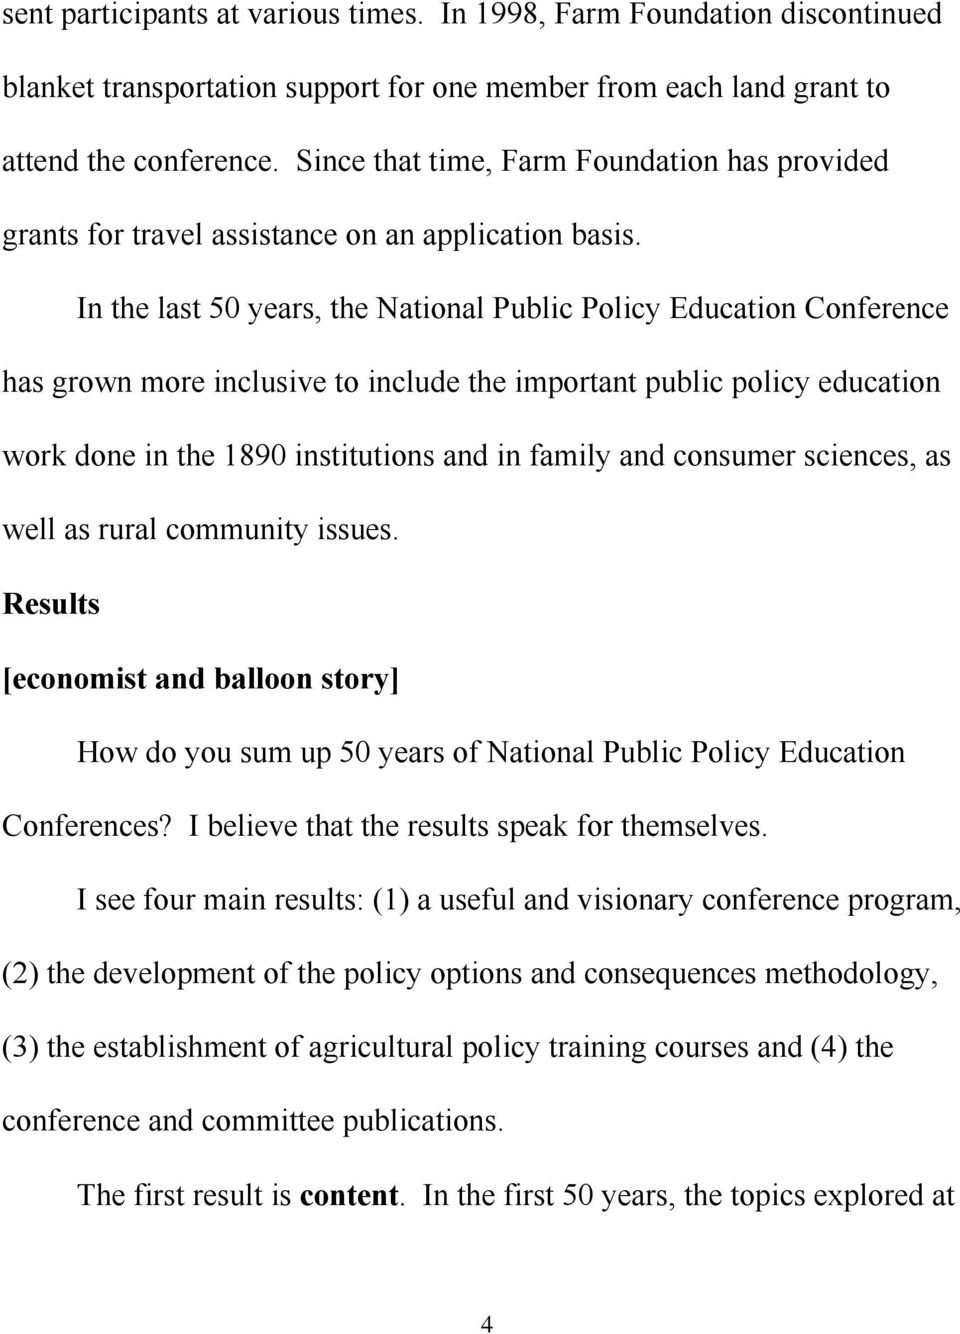 In the last 50 years, the National Public Policy Education Conference has grown more inclusive to include the important public policy education work done in the 1890 institutions and in family and